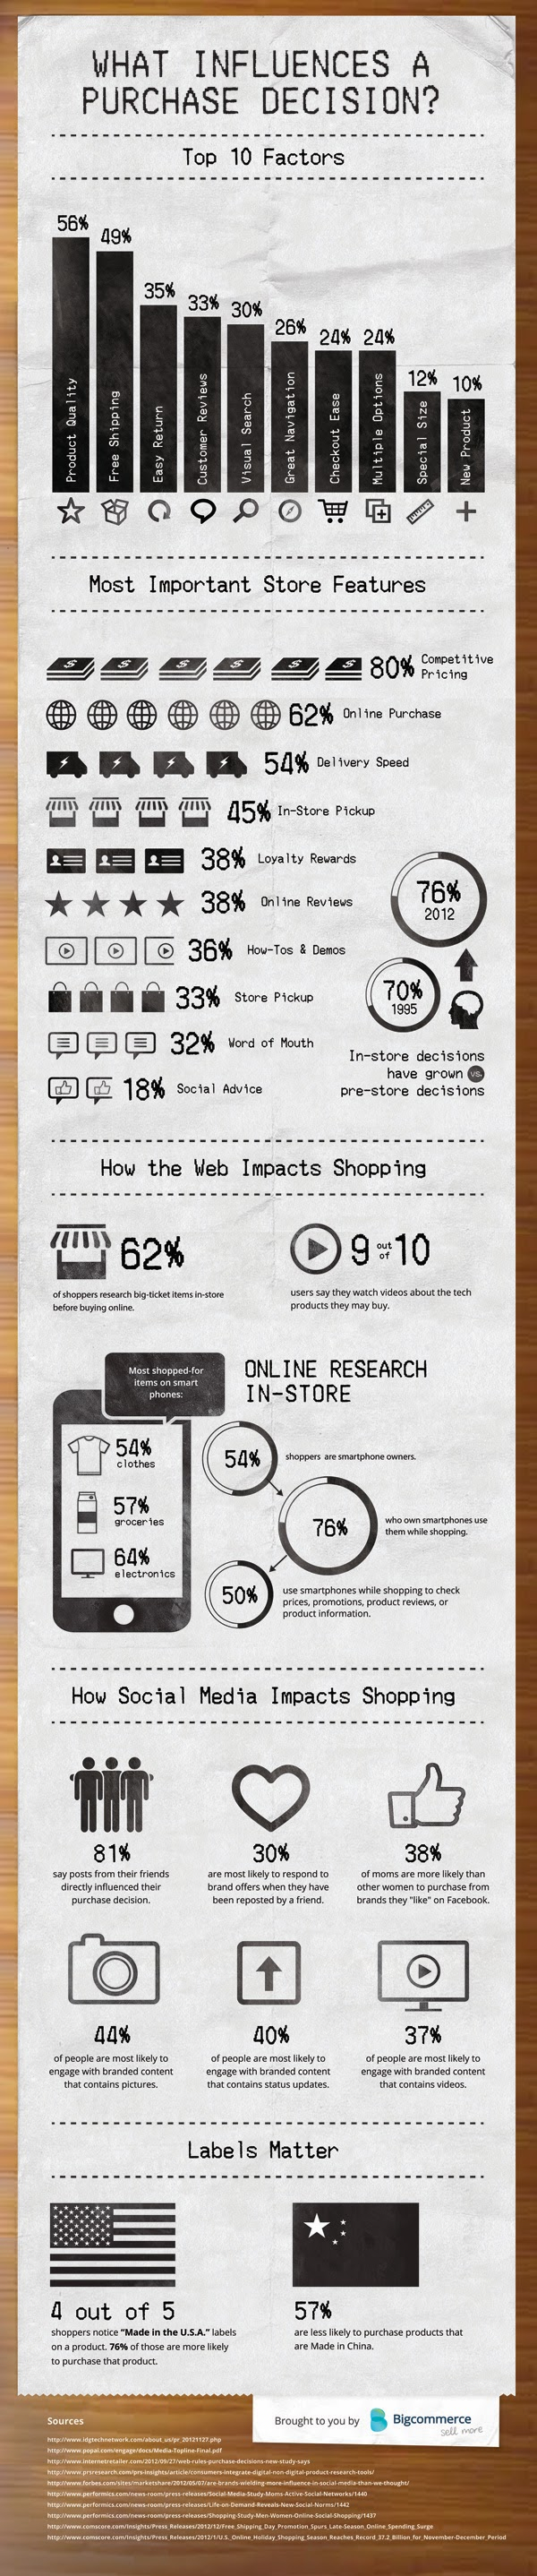 What Influences a Purchase Desicion Infographic Top 10 Factors That Influence Online Purchase Decisions [infographic]